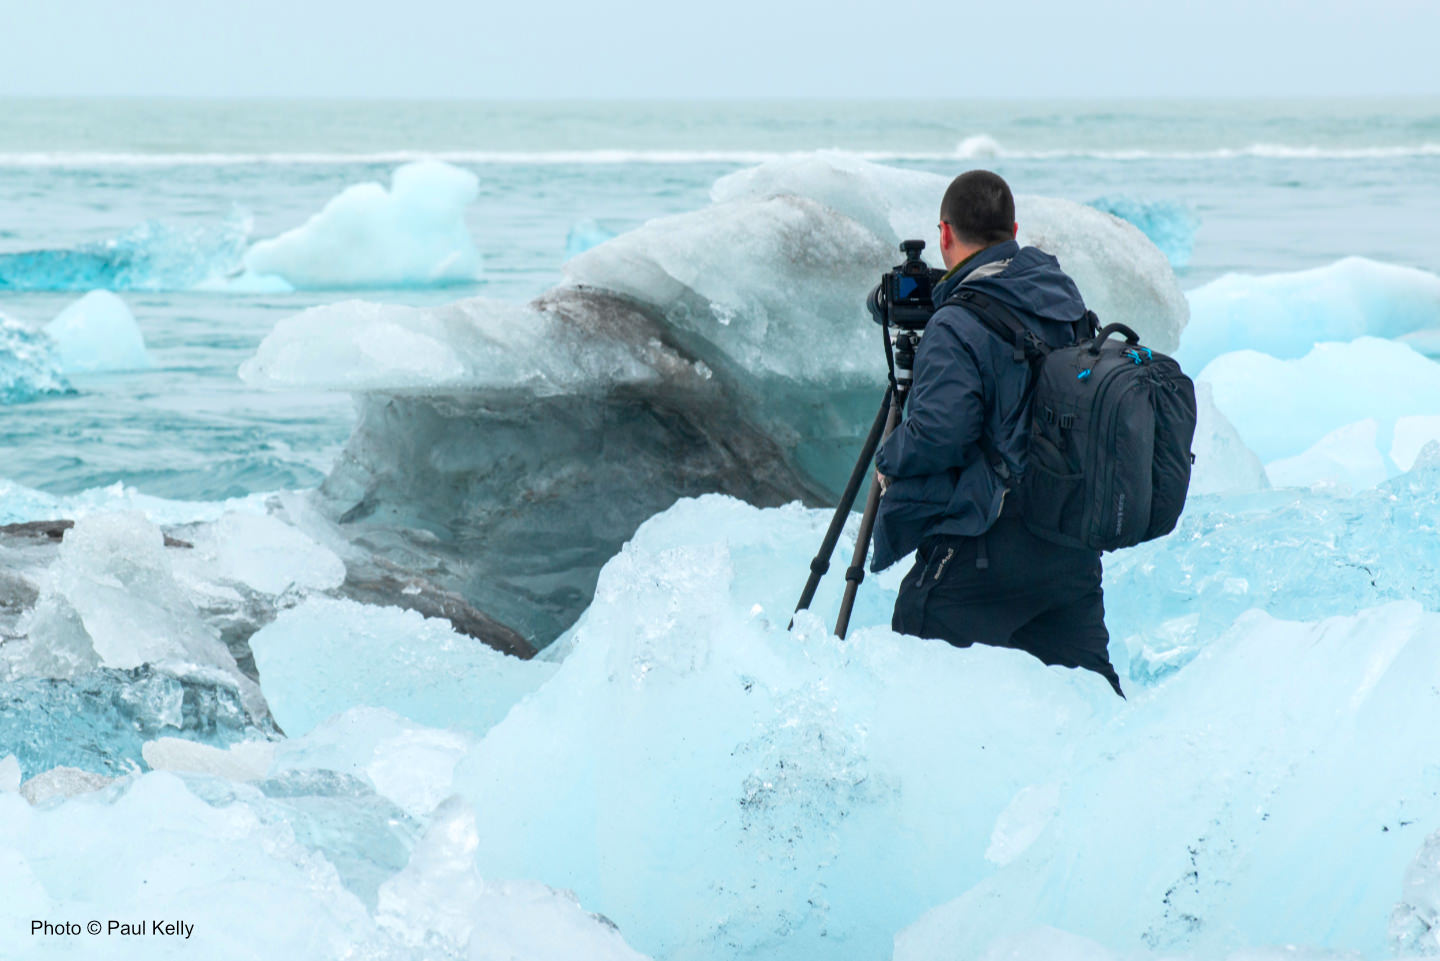 Martin in Iceland by Paul Kelly